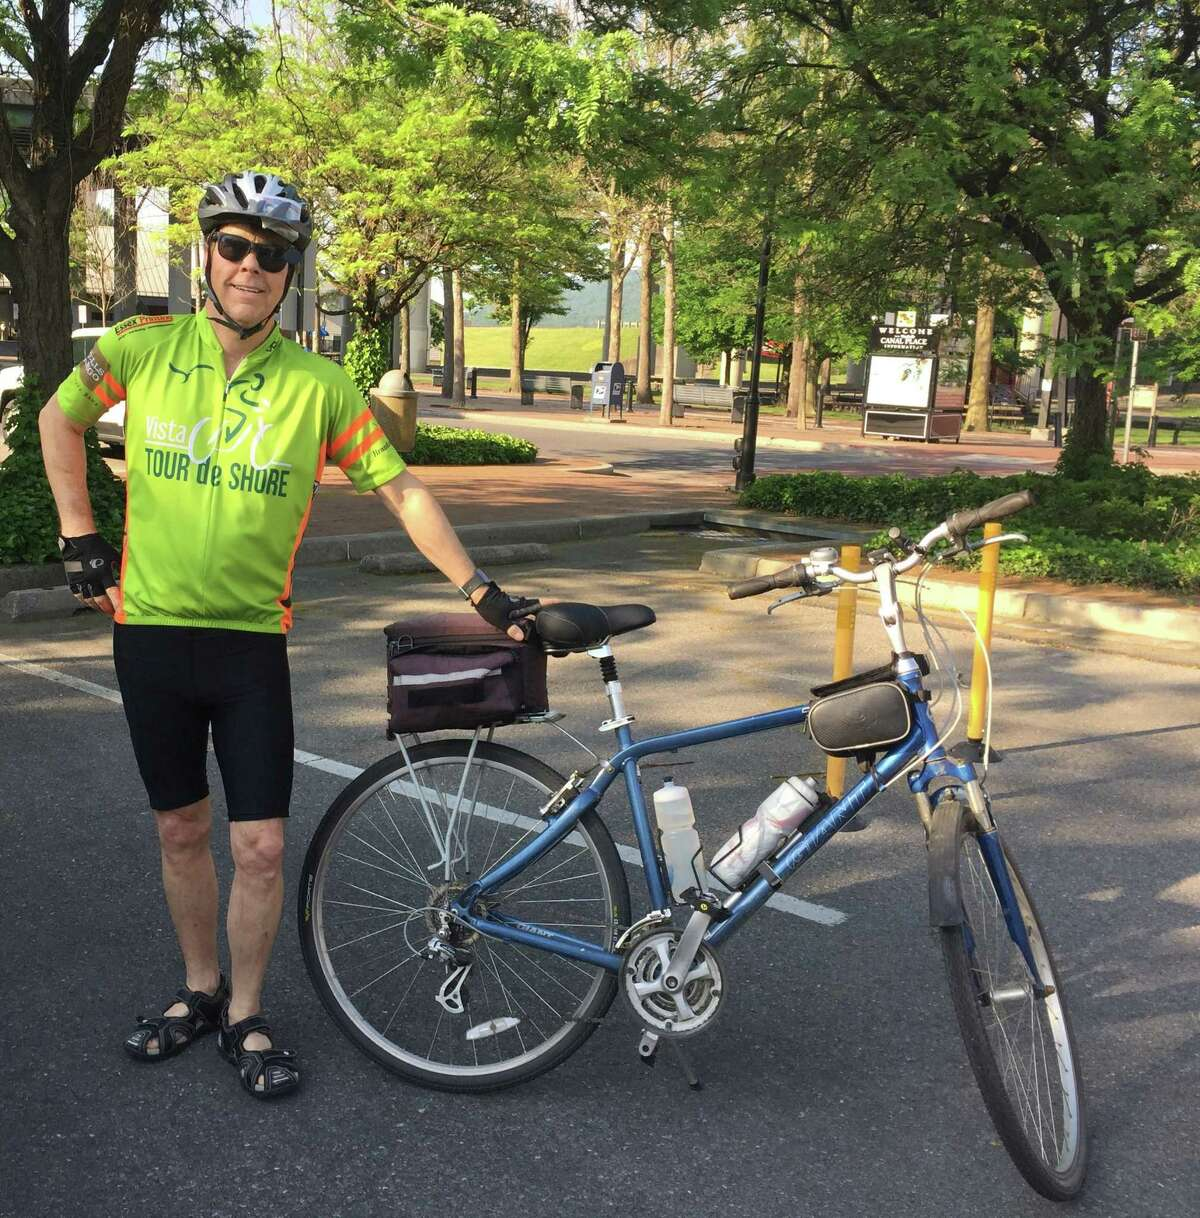 Paul Egan and his wife, Liz, of Clinton, are raising money for cancer research and treatment by participating in the Closer to Free Ride organized by Smilow Cancer Hospital and Yale Cancer Center. Egan's mission is now personal after he received treatment at Smilow for his blood cancer.